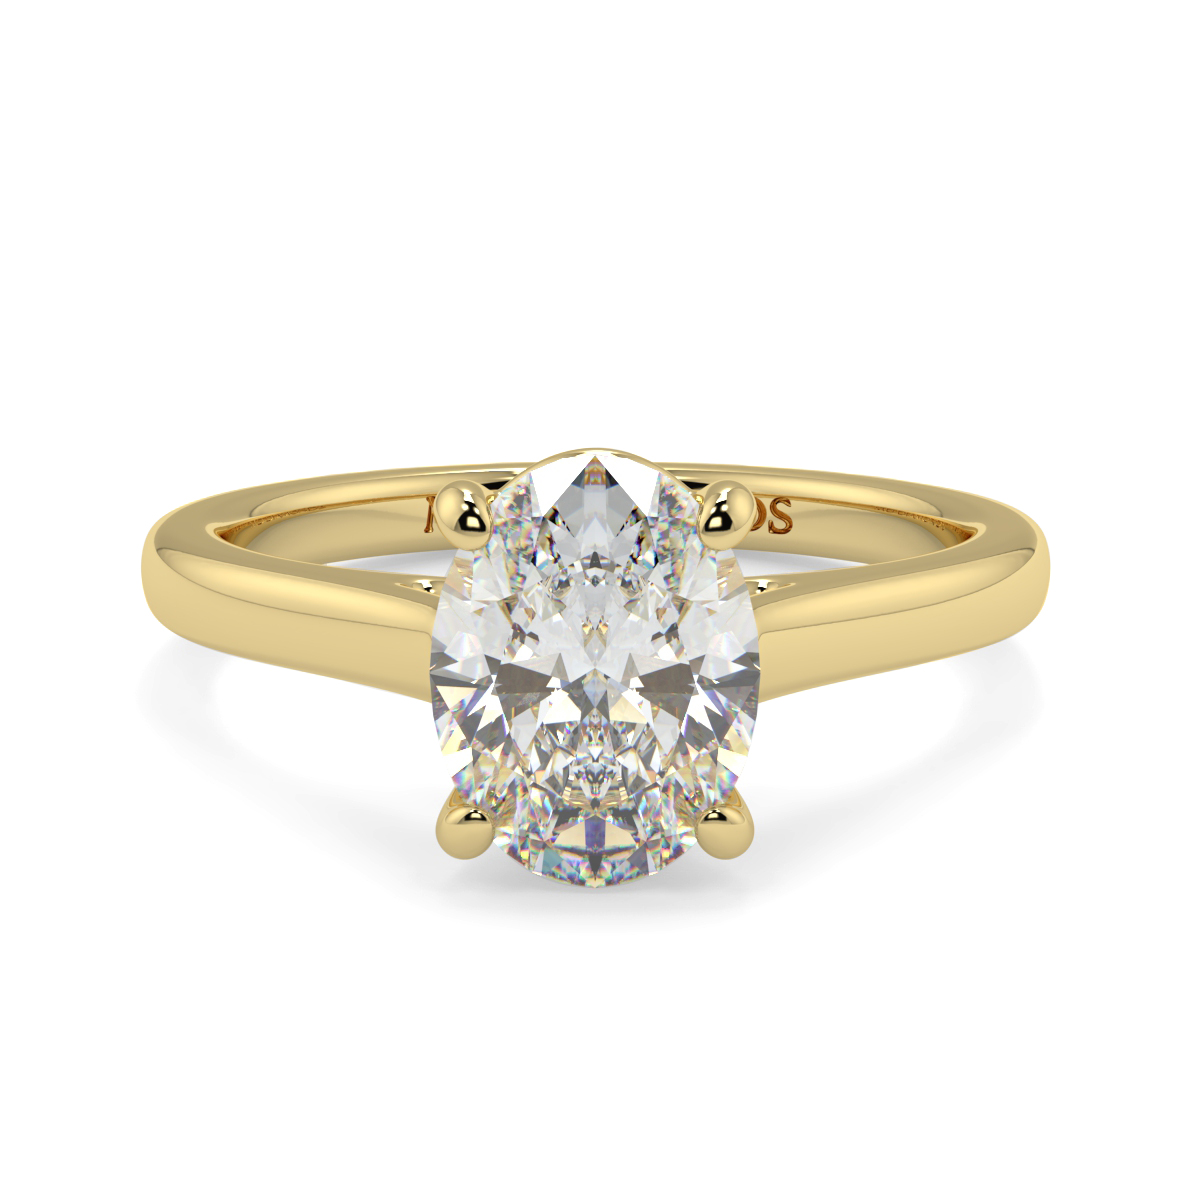 Oval 4 Claw Wed Fit Solitaire Ring